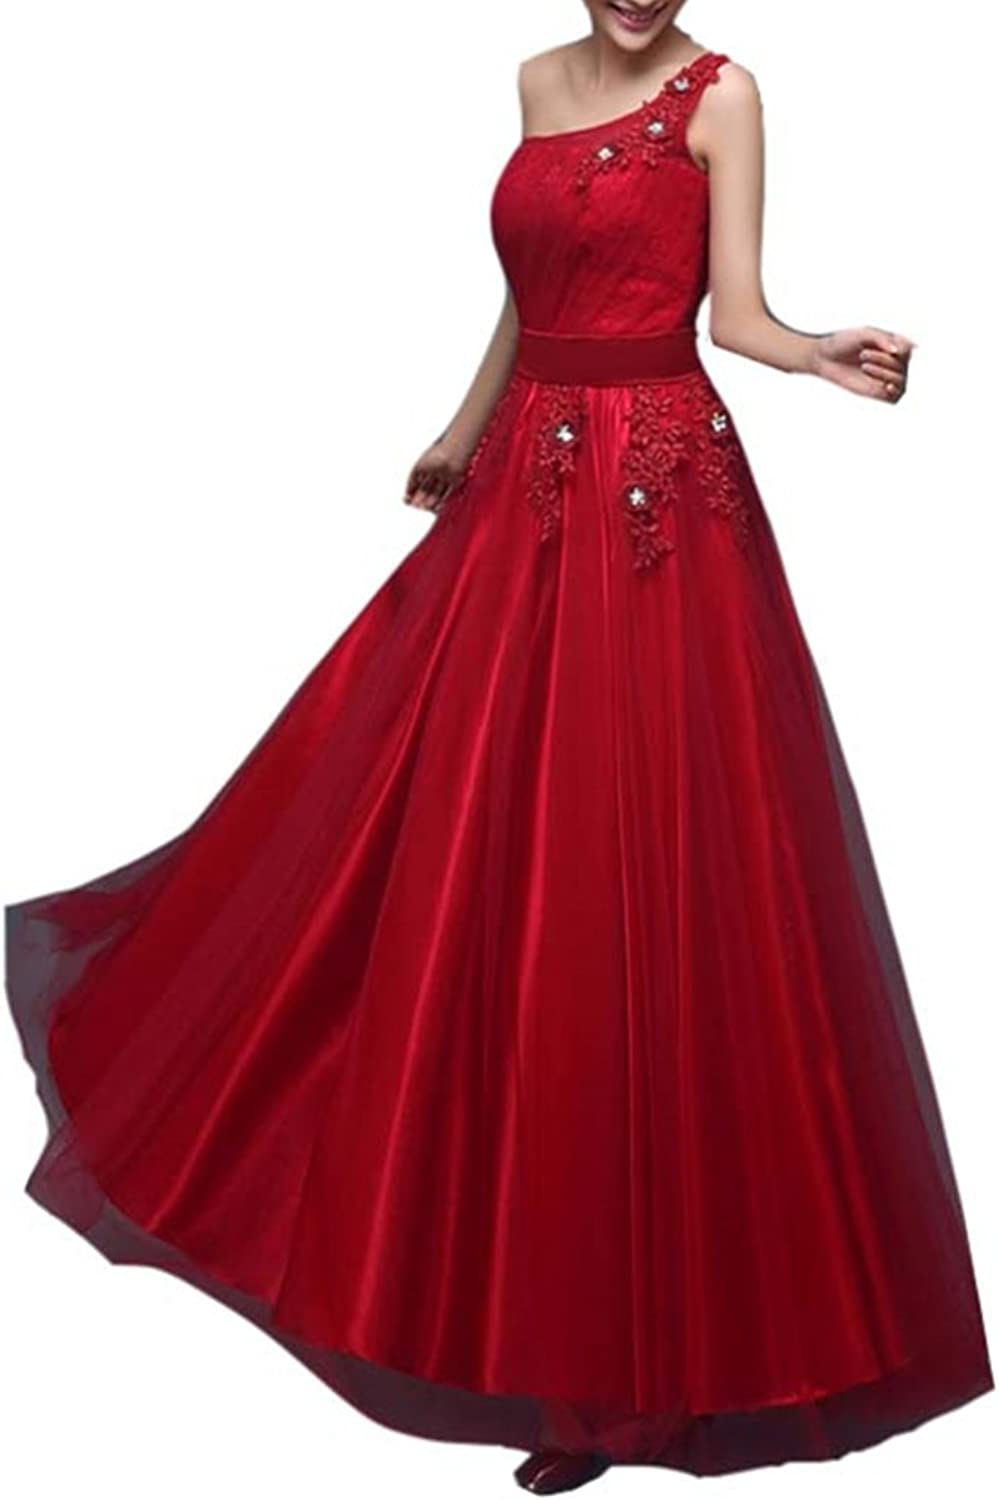 Emmani Women's One Shoulder Strapless Long Tulle Wedding Party Bridesmaid Dresses